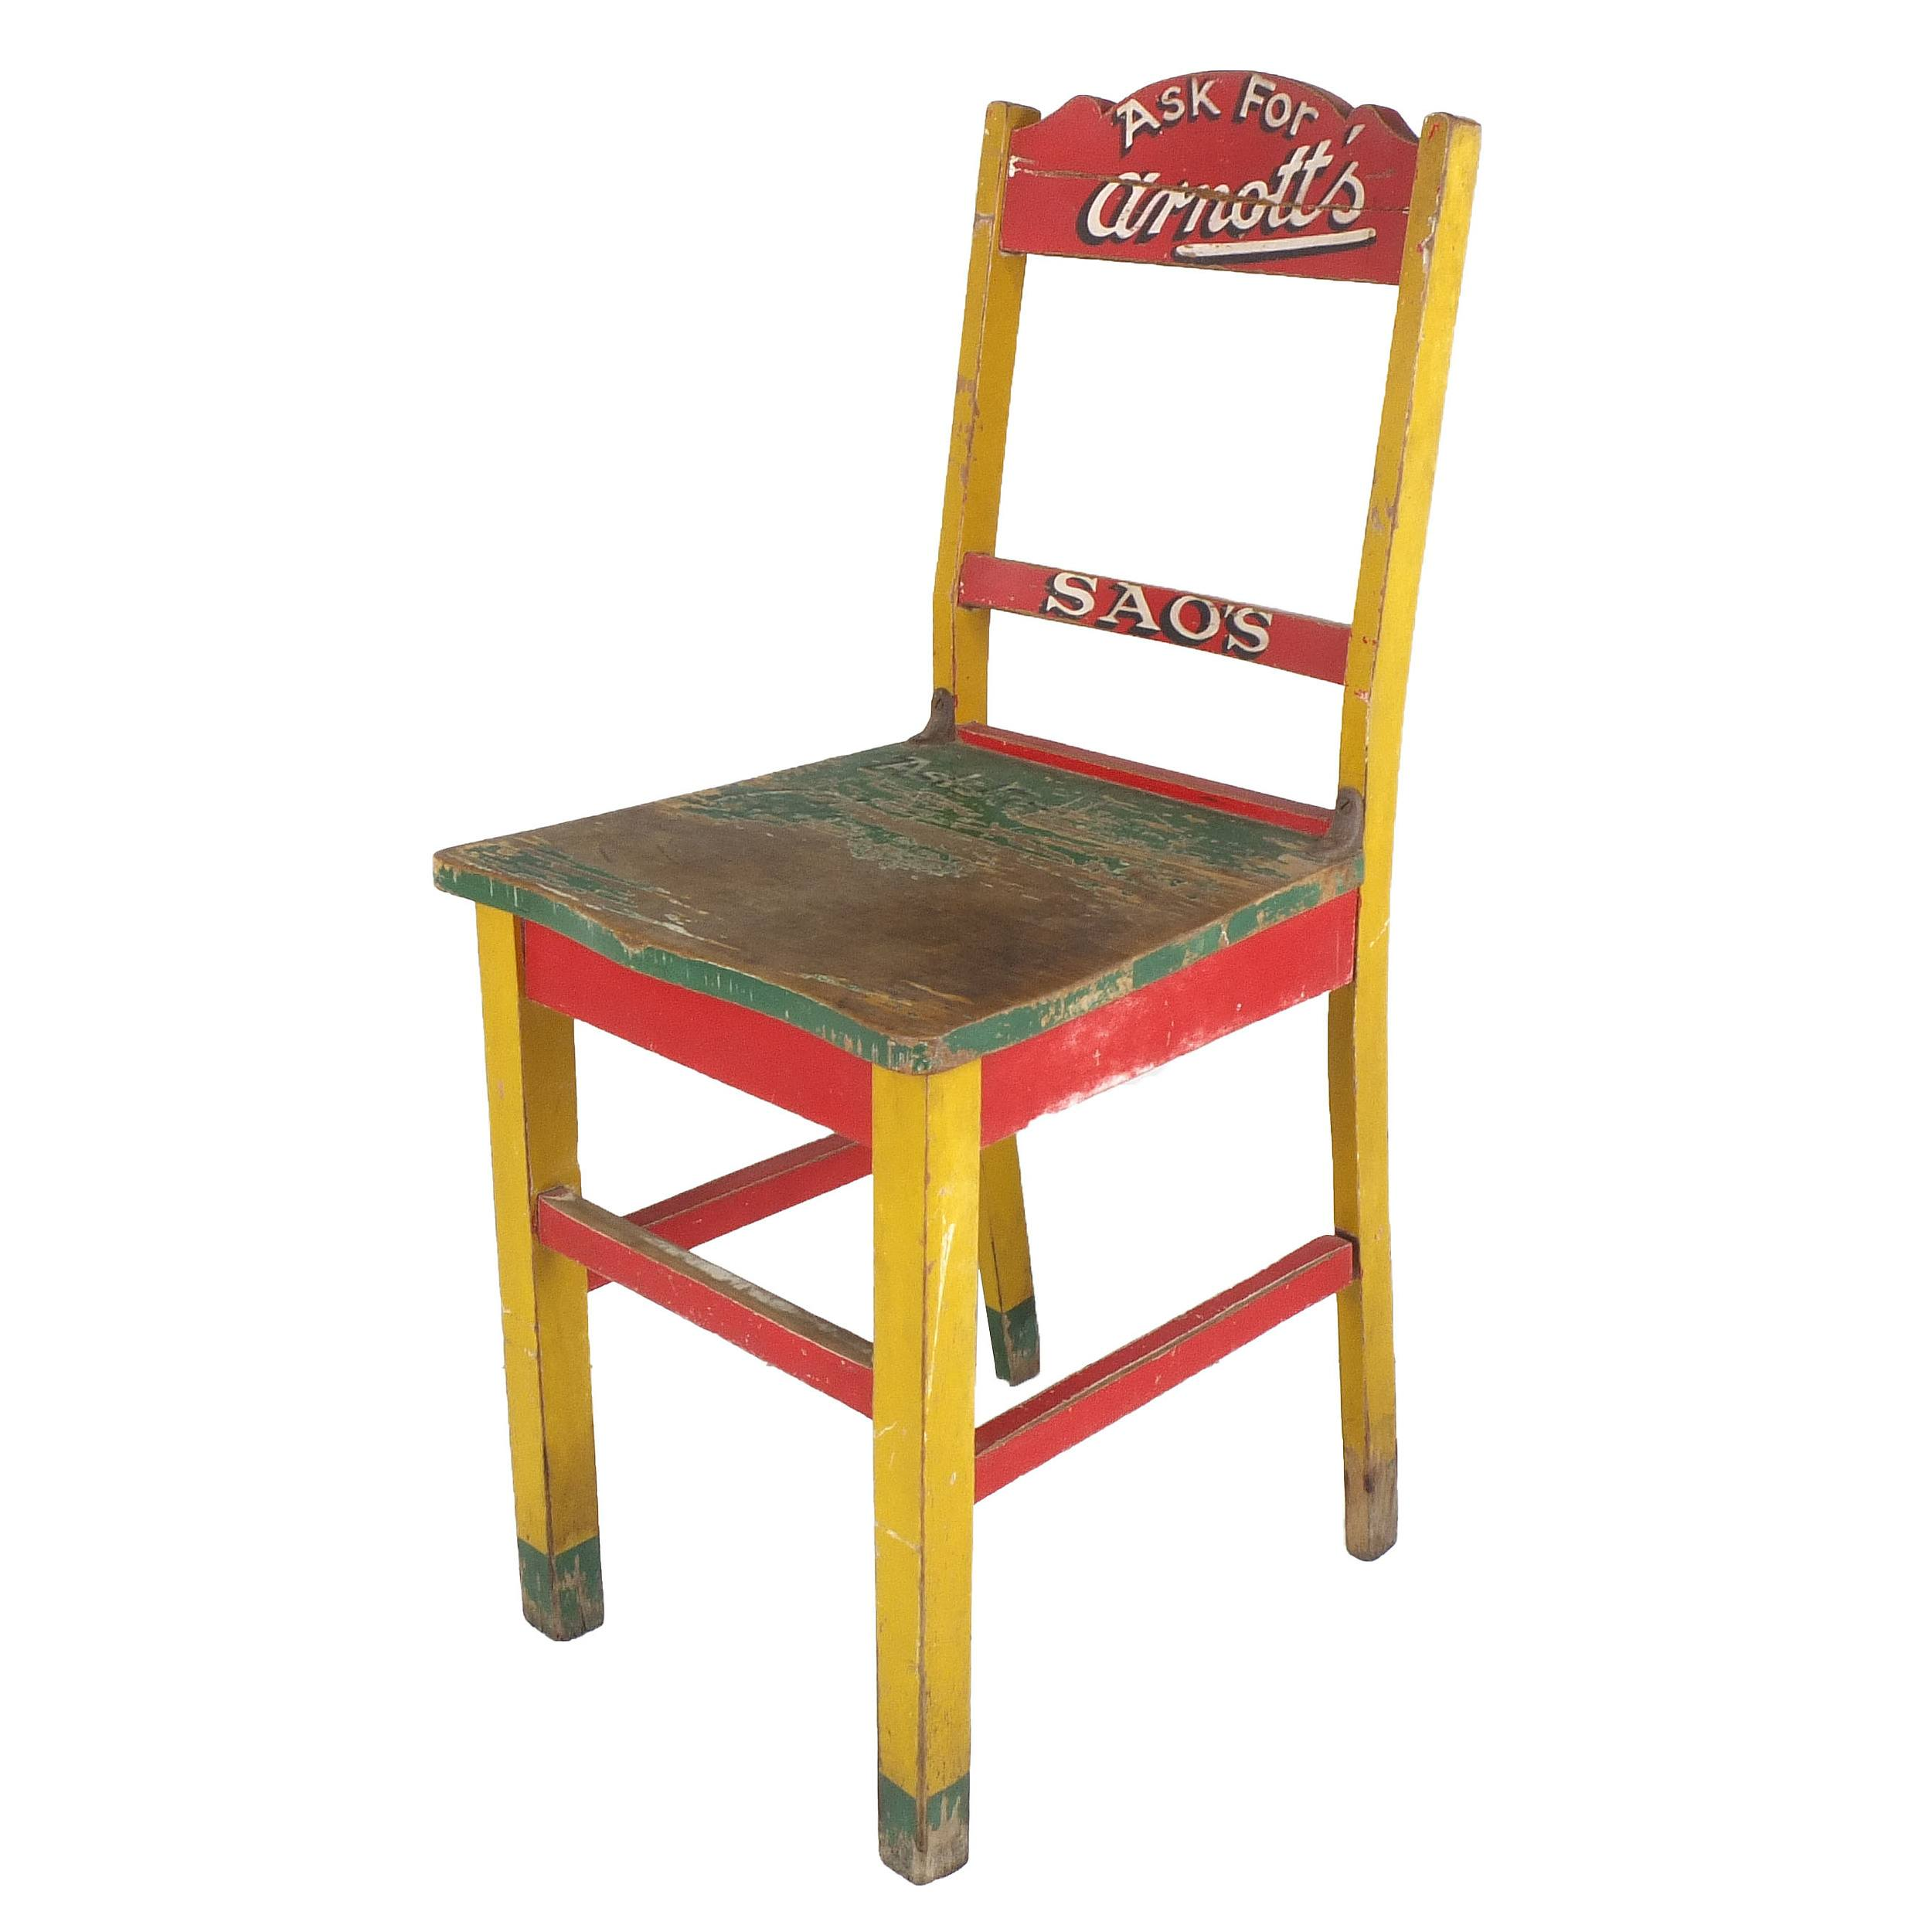 'Genuine Vintage Iconic Arnotts Biscuits Advertising Chair, Painted Kauri Pine'